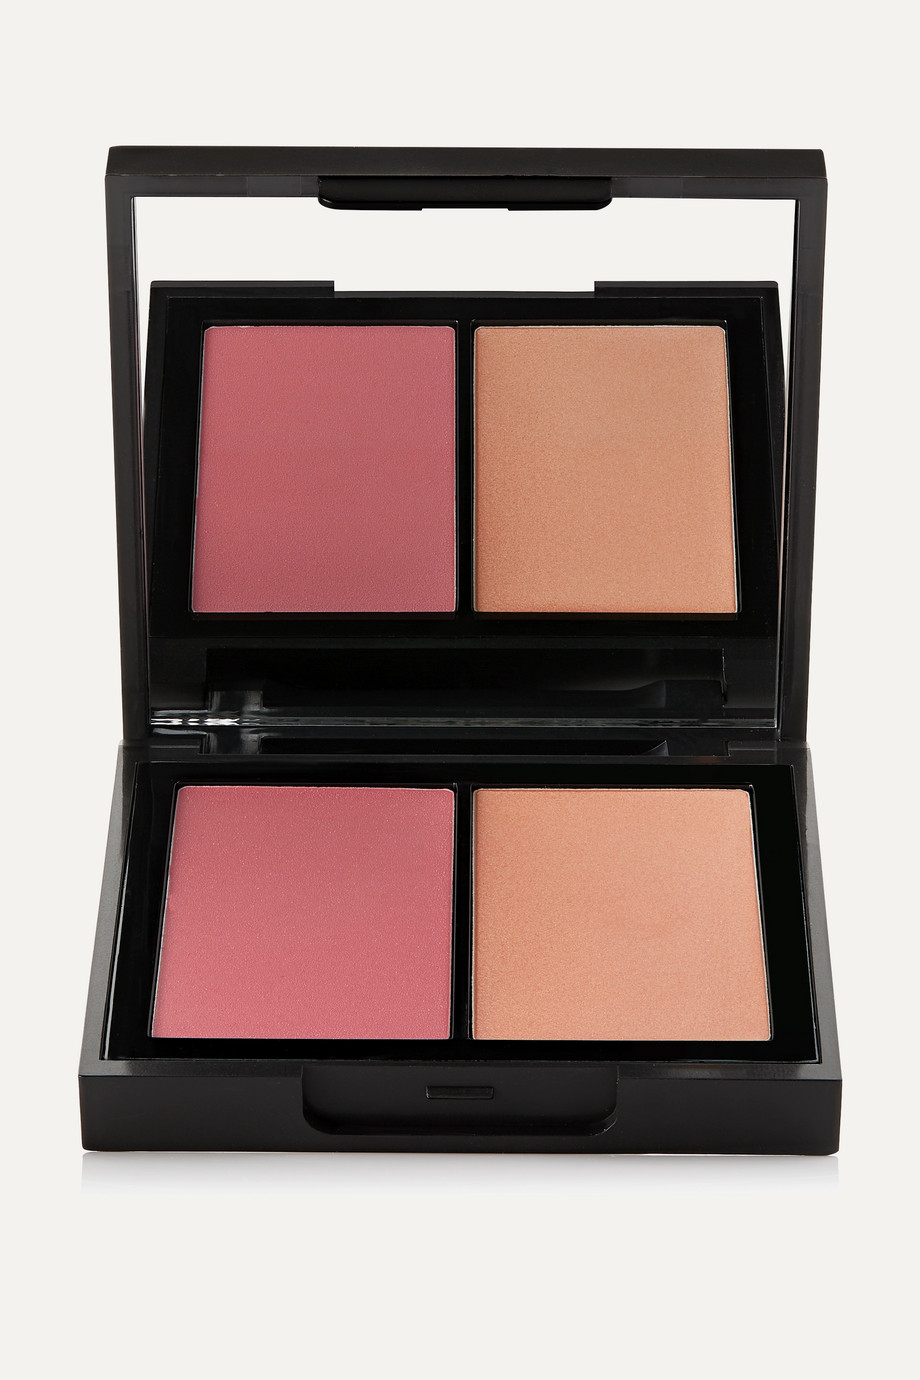 Kosas Color & Light Crème Blush - 8th Muse